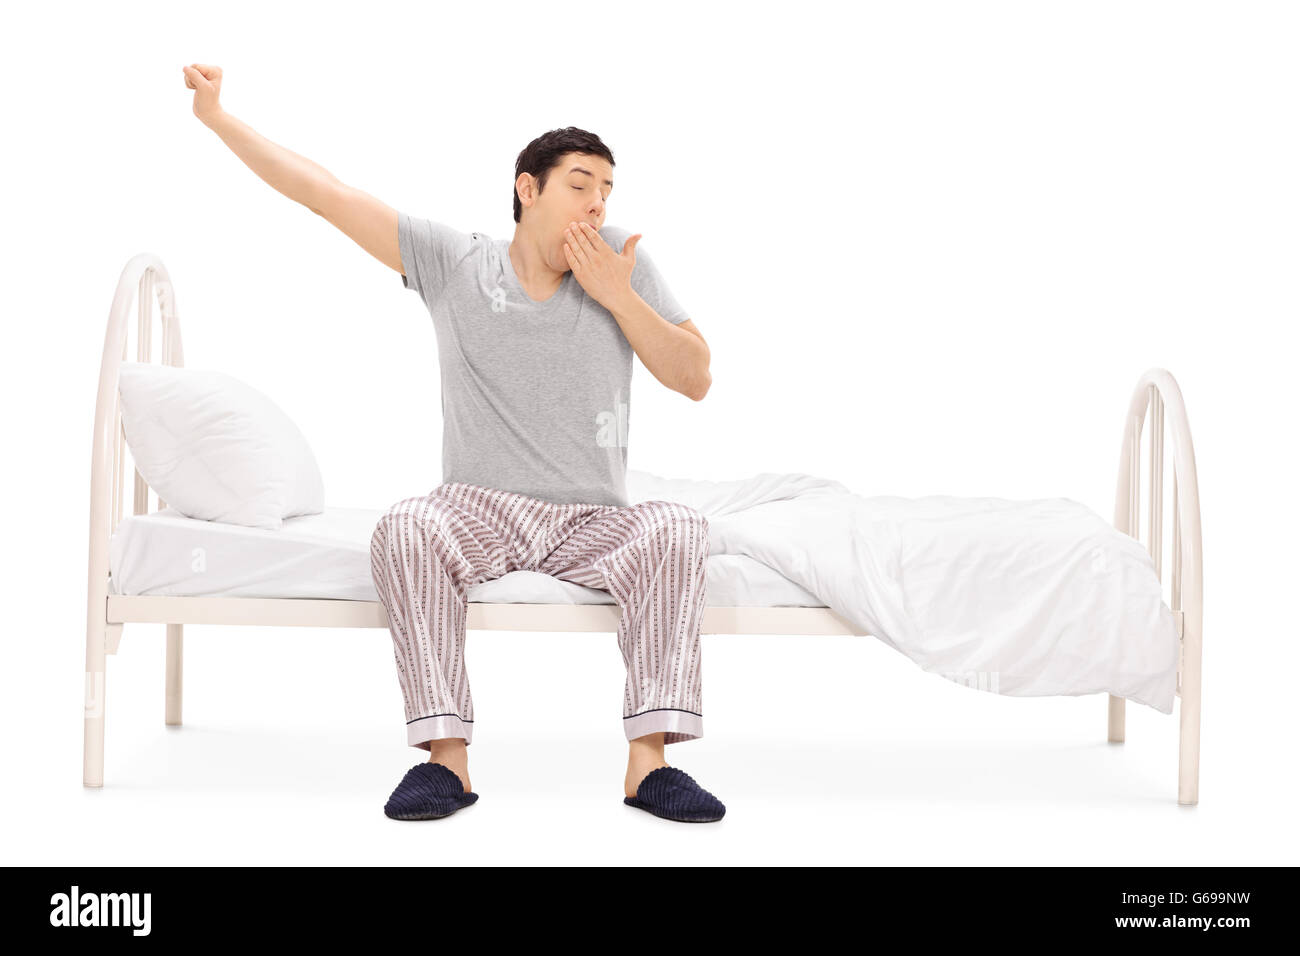 Young guy in pajamas sitting on a bed and yawning isolated on white background - Stock Image